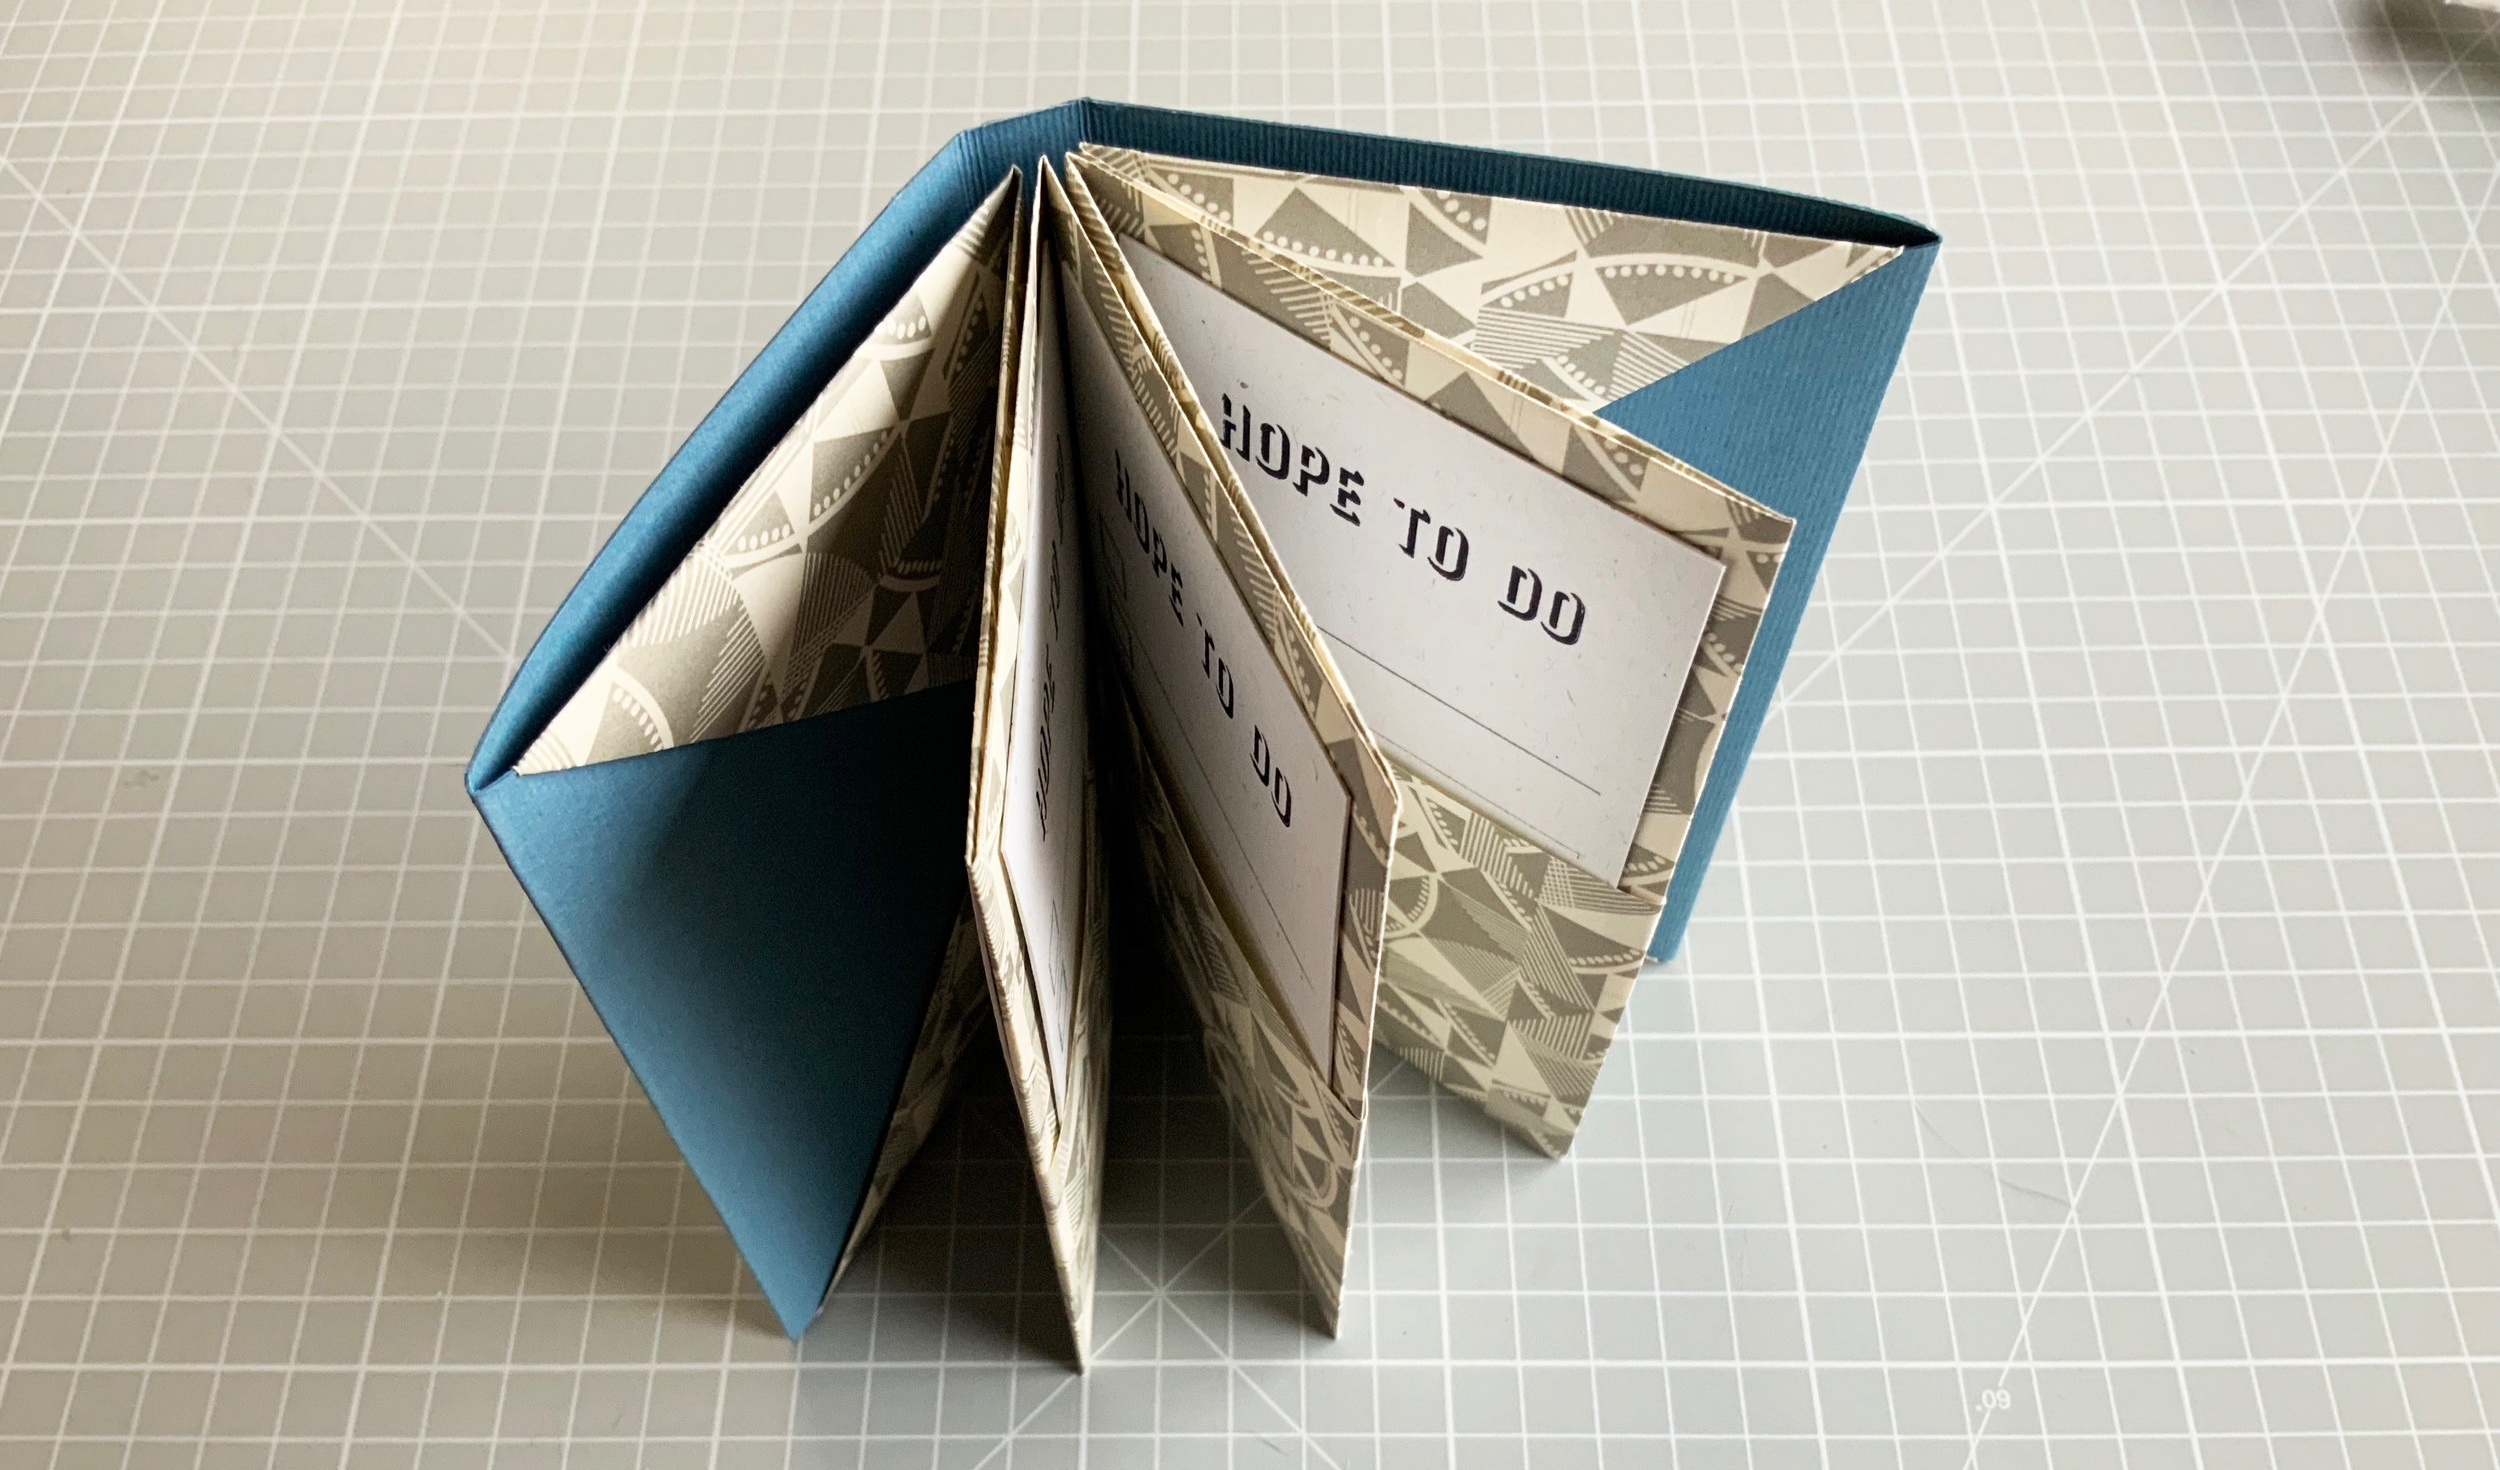 A Hand Folded & Letterpress Printed 'Hope to do' Pocket Book